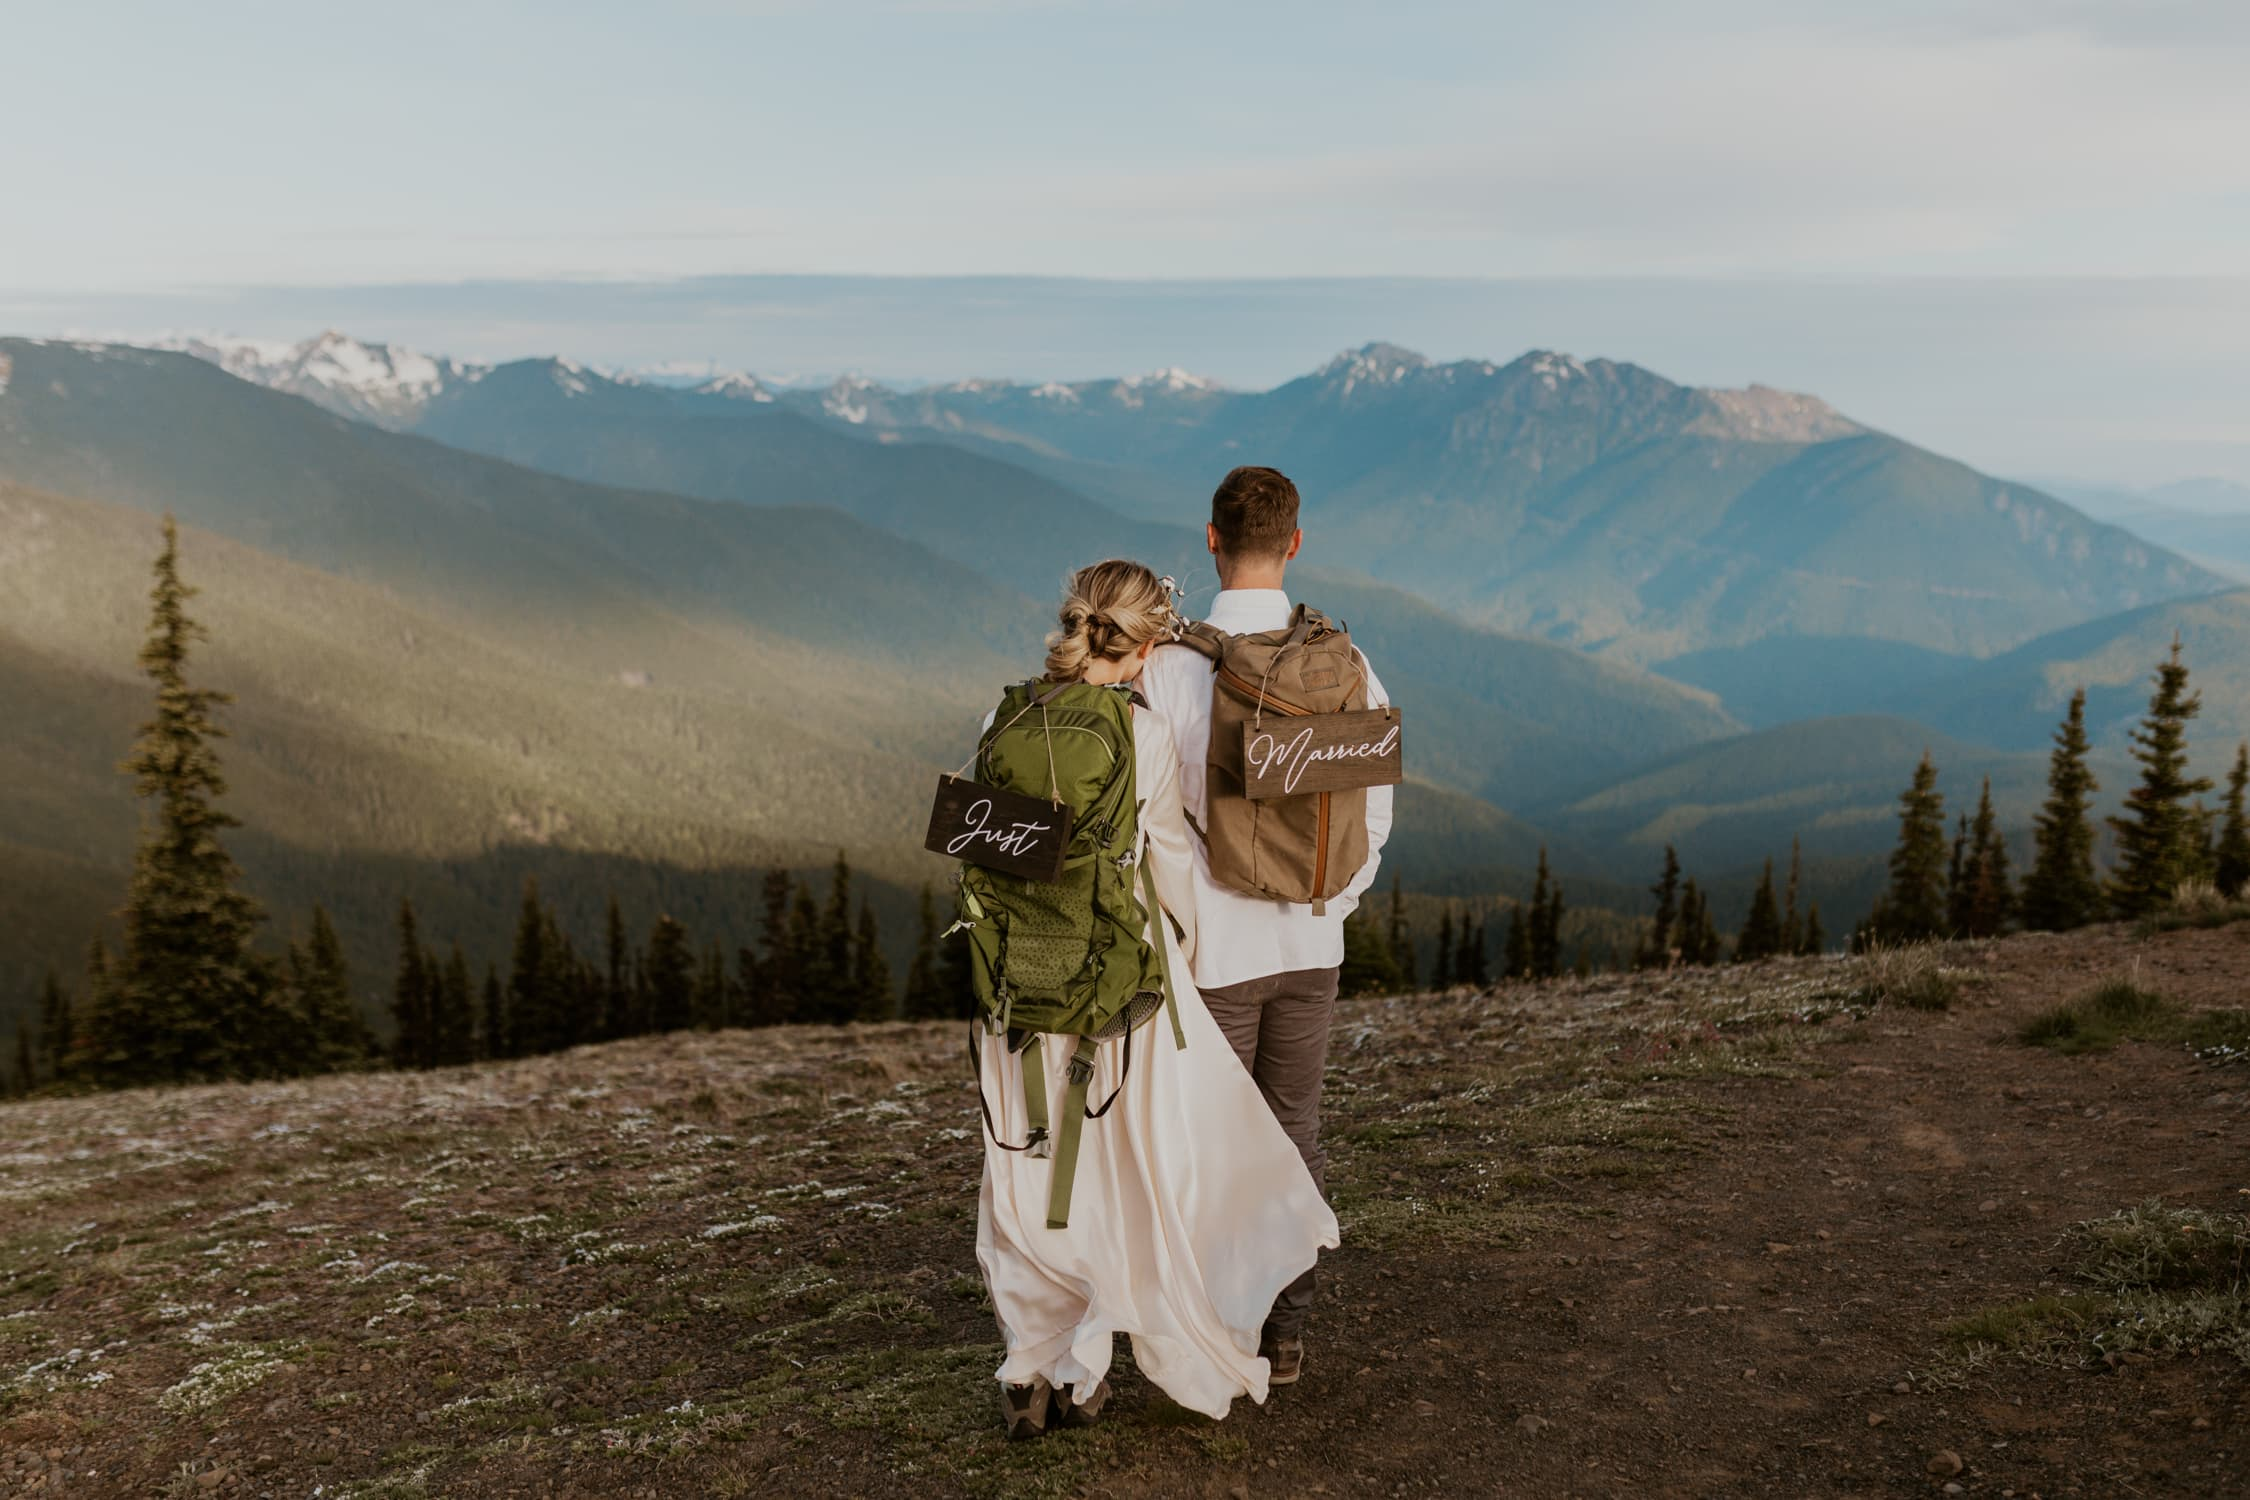 A couple looking at Hurricane Ridge with hiking backpacks and just married signs.